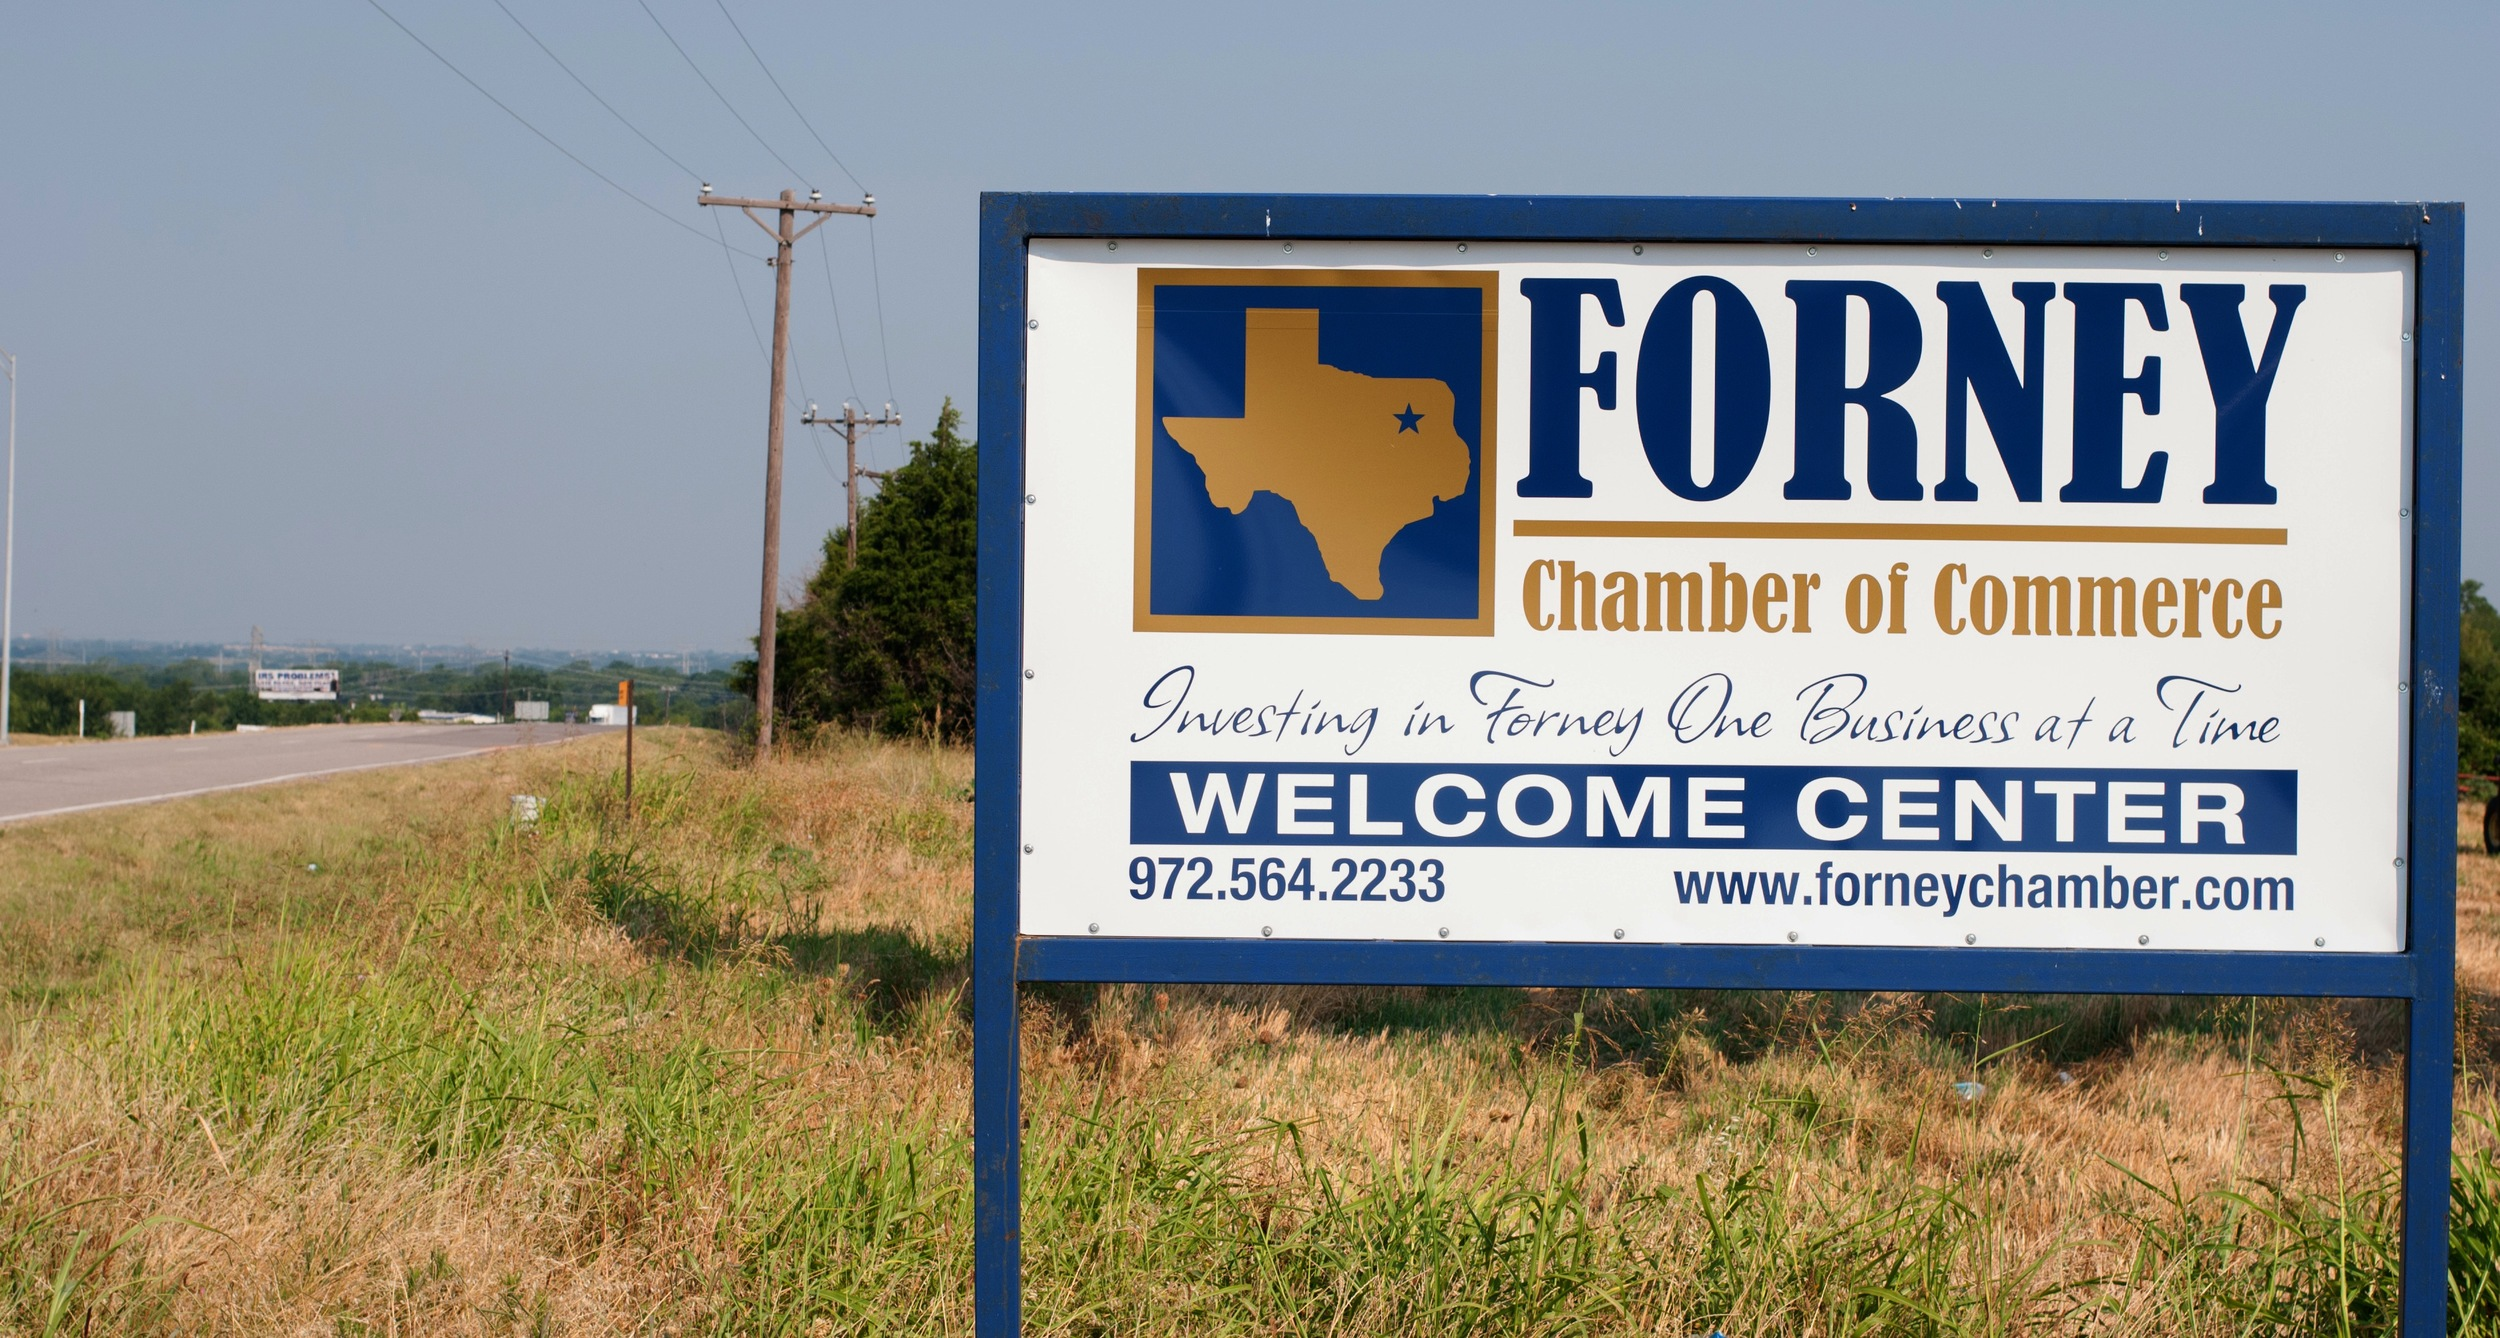 The Forney Chamber of Commerce